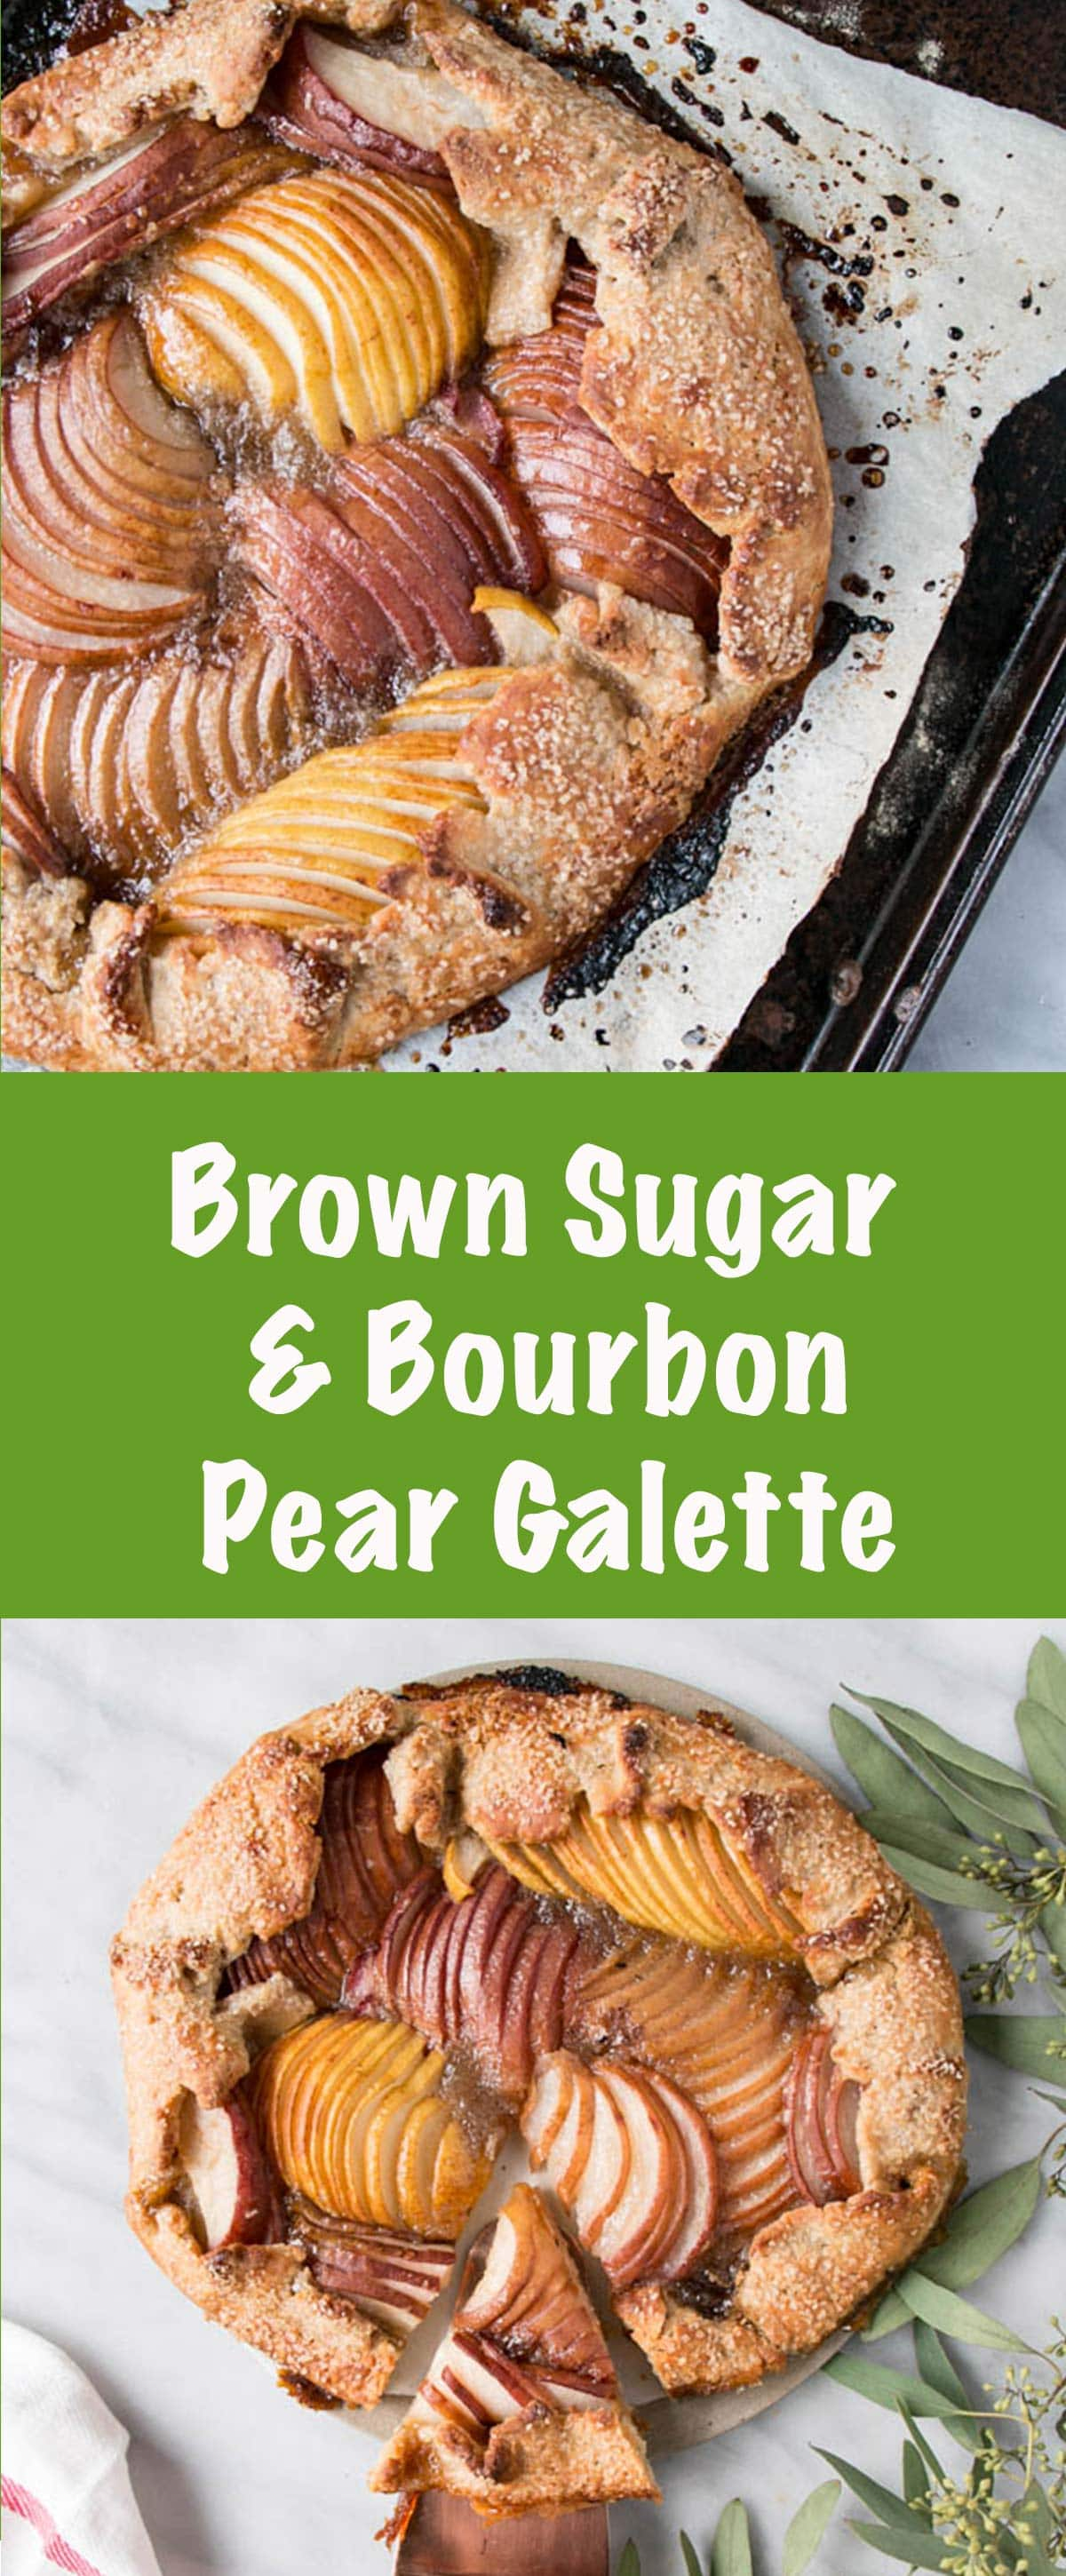 Brown Sugar Bourbon Pear Galette with a whole wheat crust is a perfect Fall Treat and while simple, stunning.